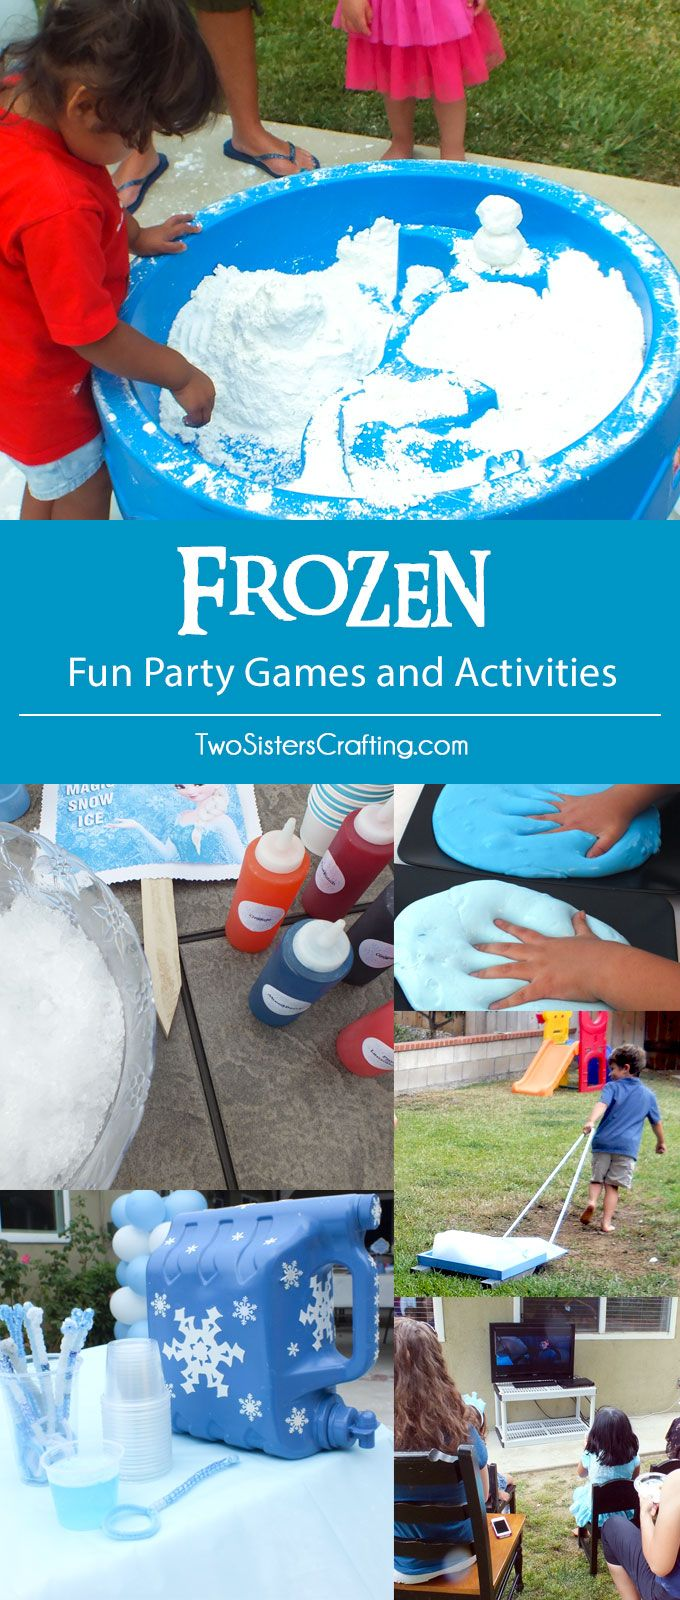 Disney Frozen Party Games and Activities - Throwing a Frozen Birthday Party? We have great ideas for Frozen-themed DIY Party Games and Activities including DIY Play Snow, Troll Slime, Snow Cones and more! Pin for later and follow us for more fun Frozen Party Ideas.